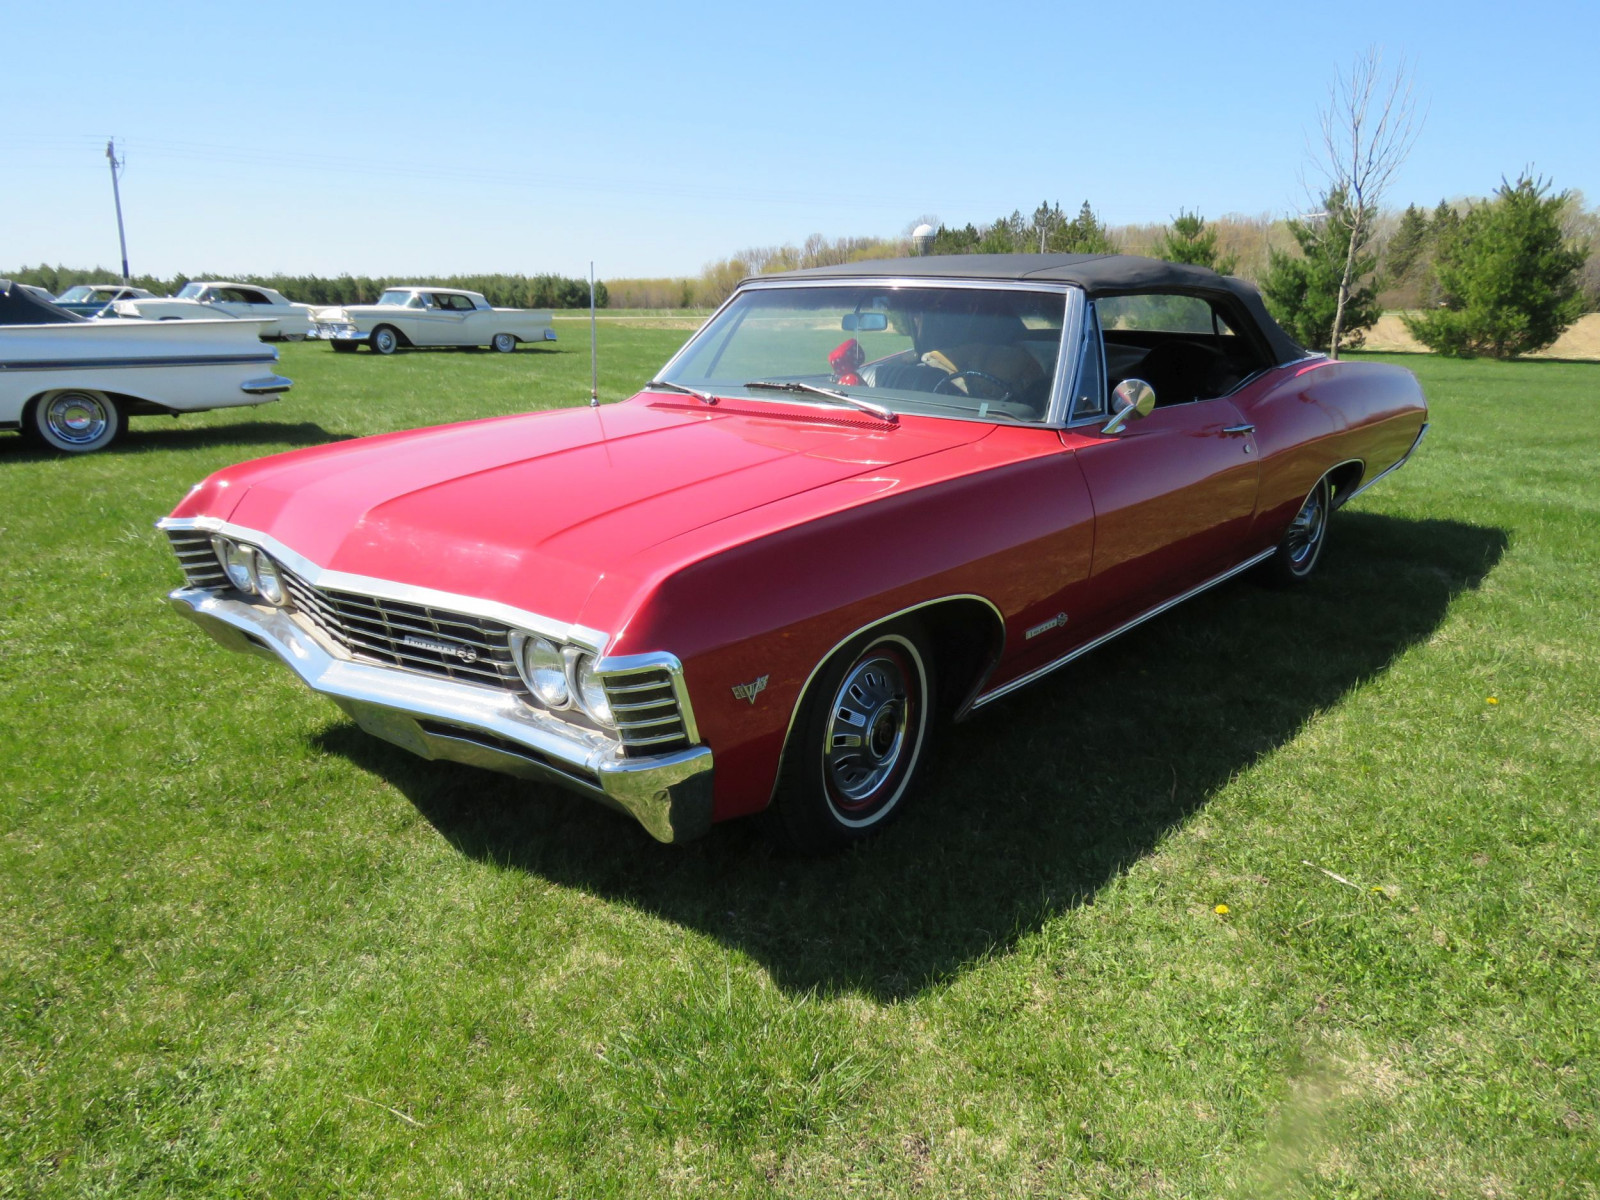 1967 Chevrolet Impala SS convertible - Image 4